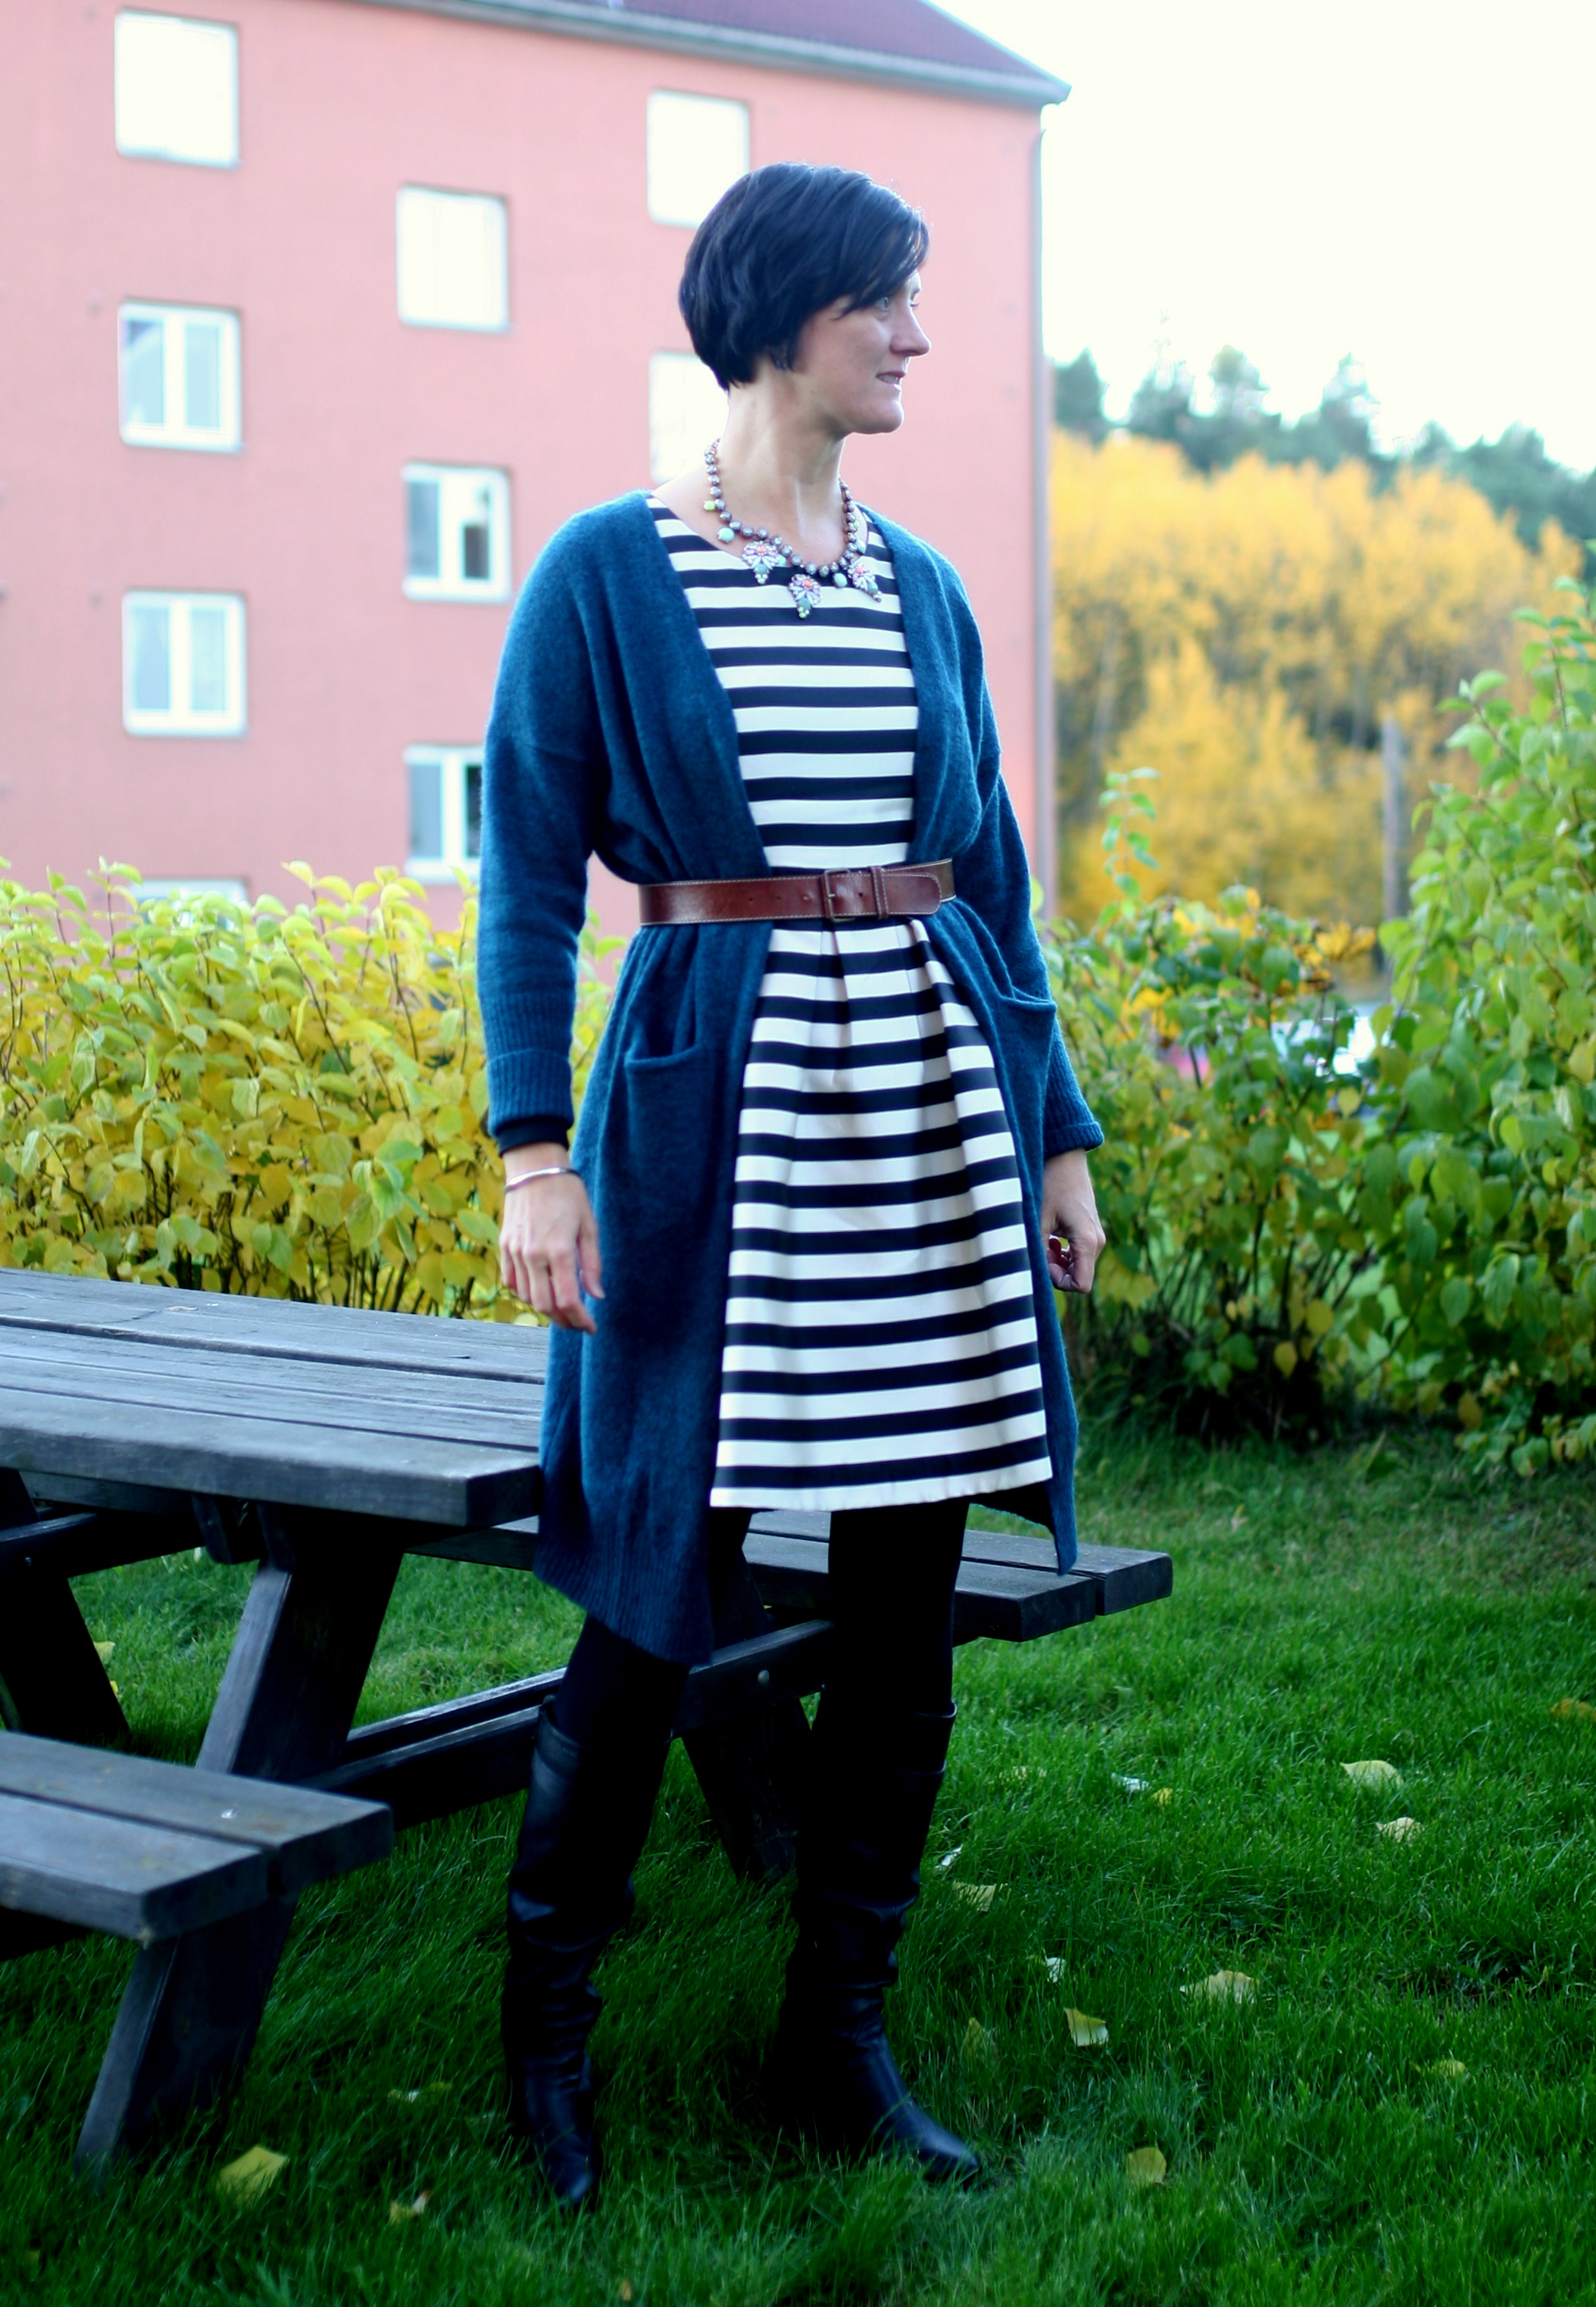 Tall Girl's Fashion // Wearing summer dresses in autumn